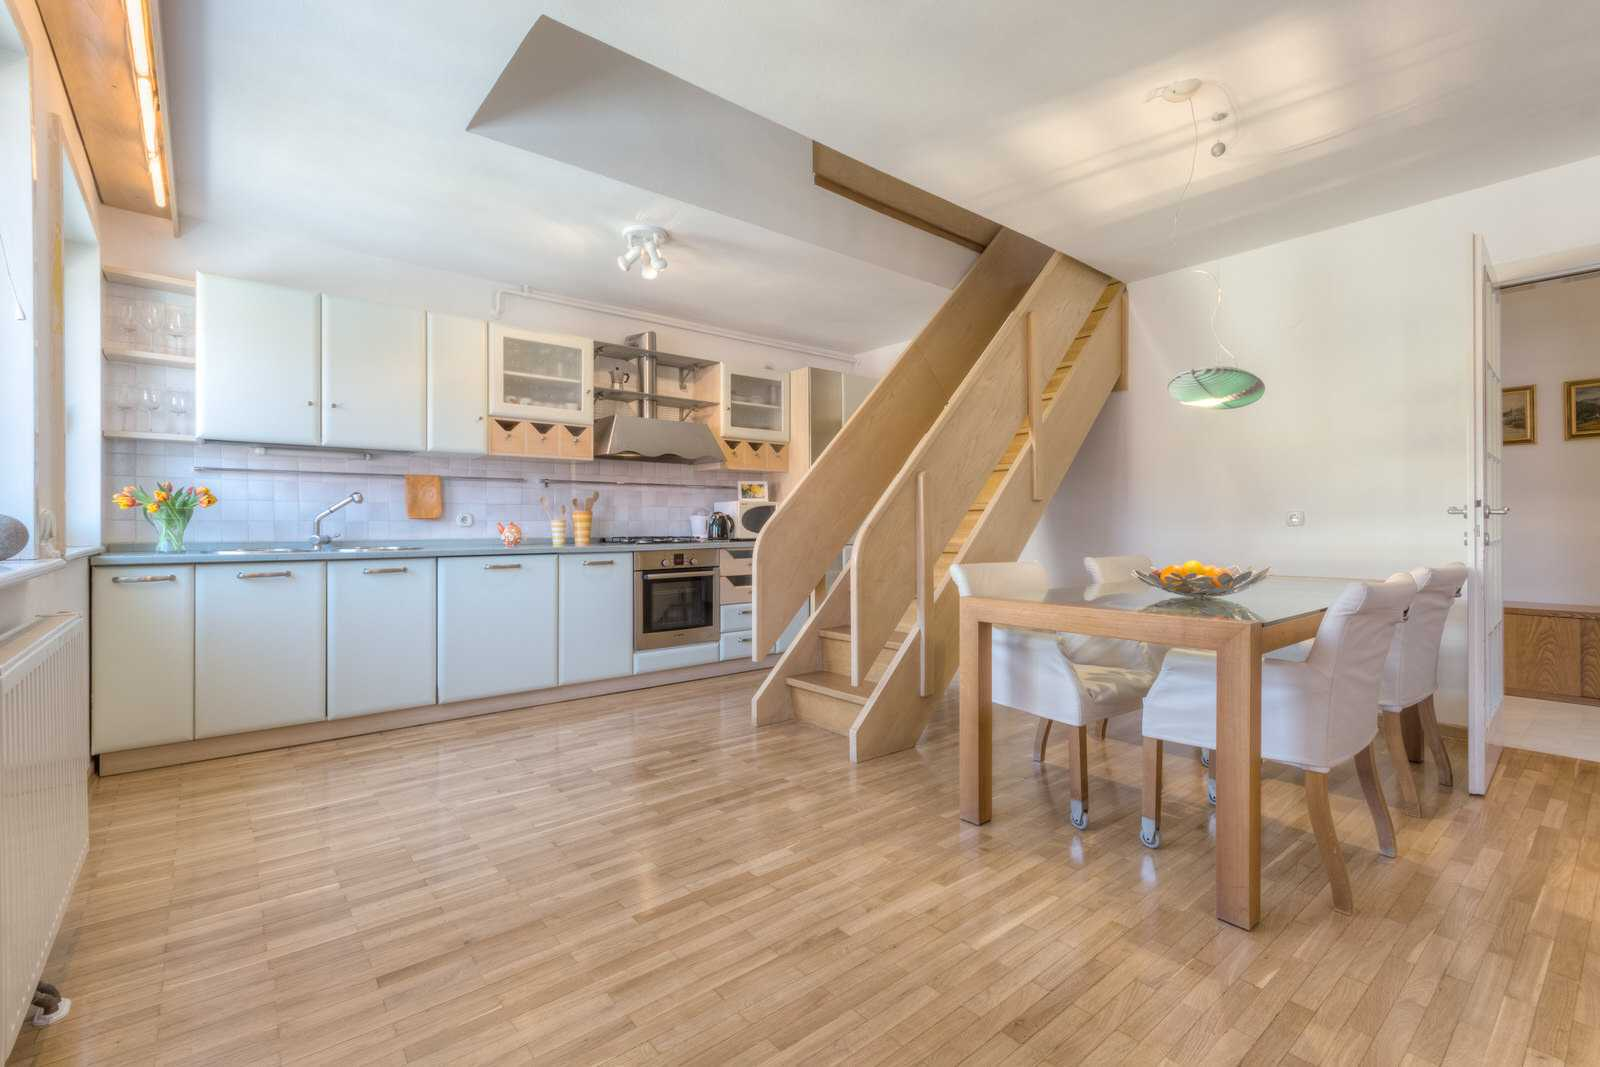 Ljubljana rental apartment Dalmatinova - kitchen and dining area that can comfortable sit six adults.